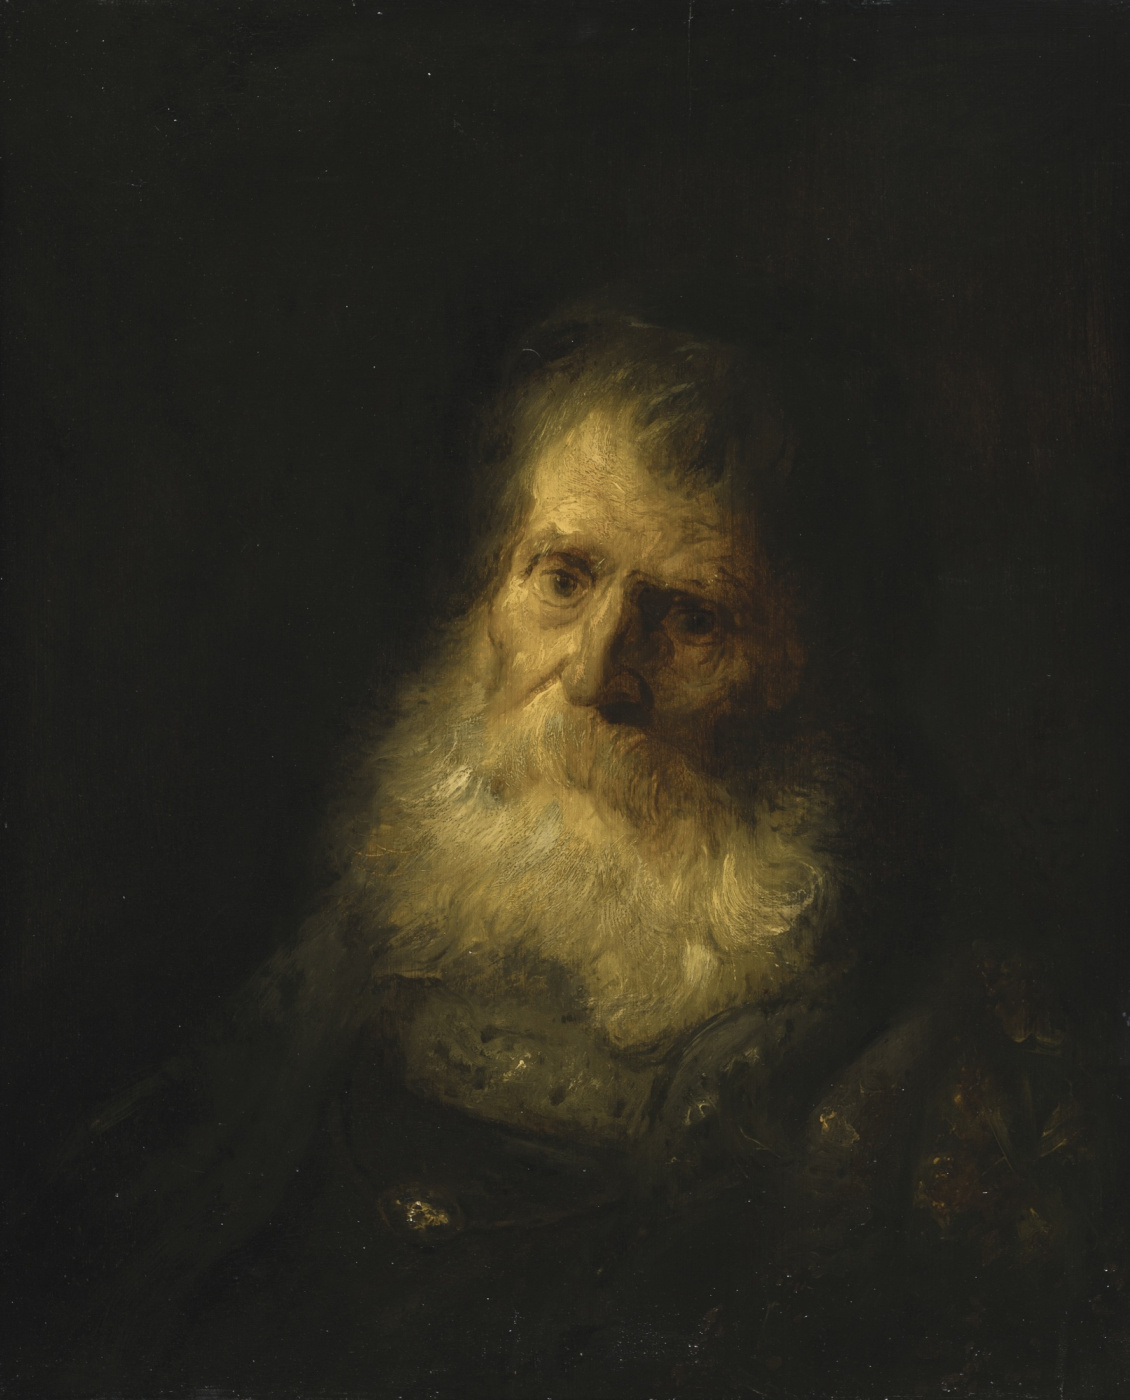 Jan Lievens. Portrait of an old man with a beard